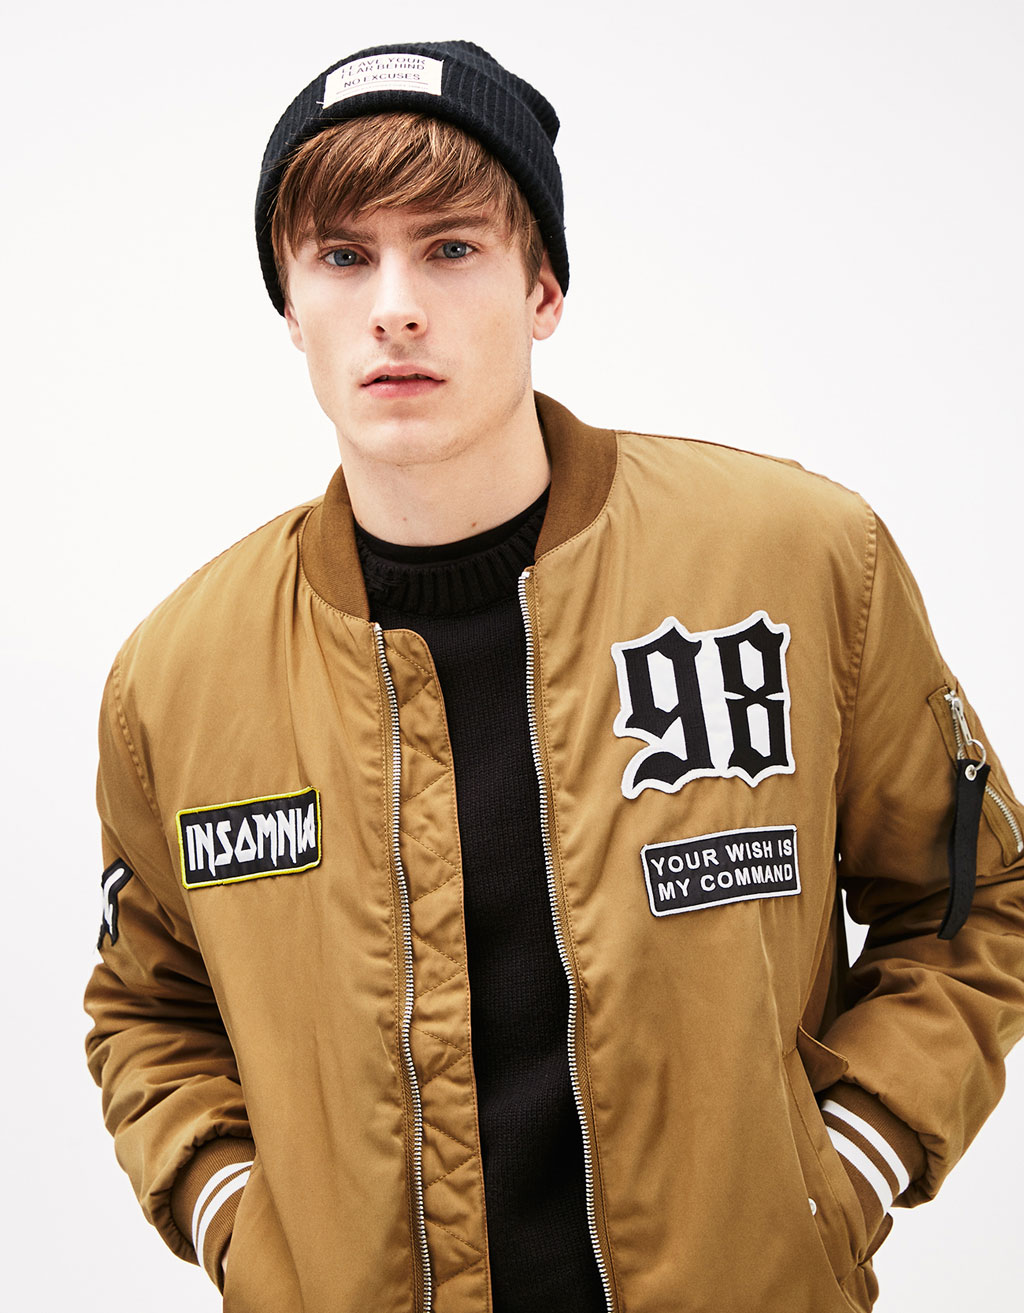 Baseball jacket with text